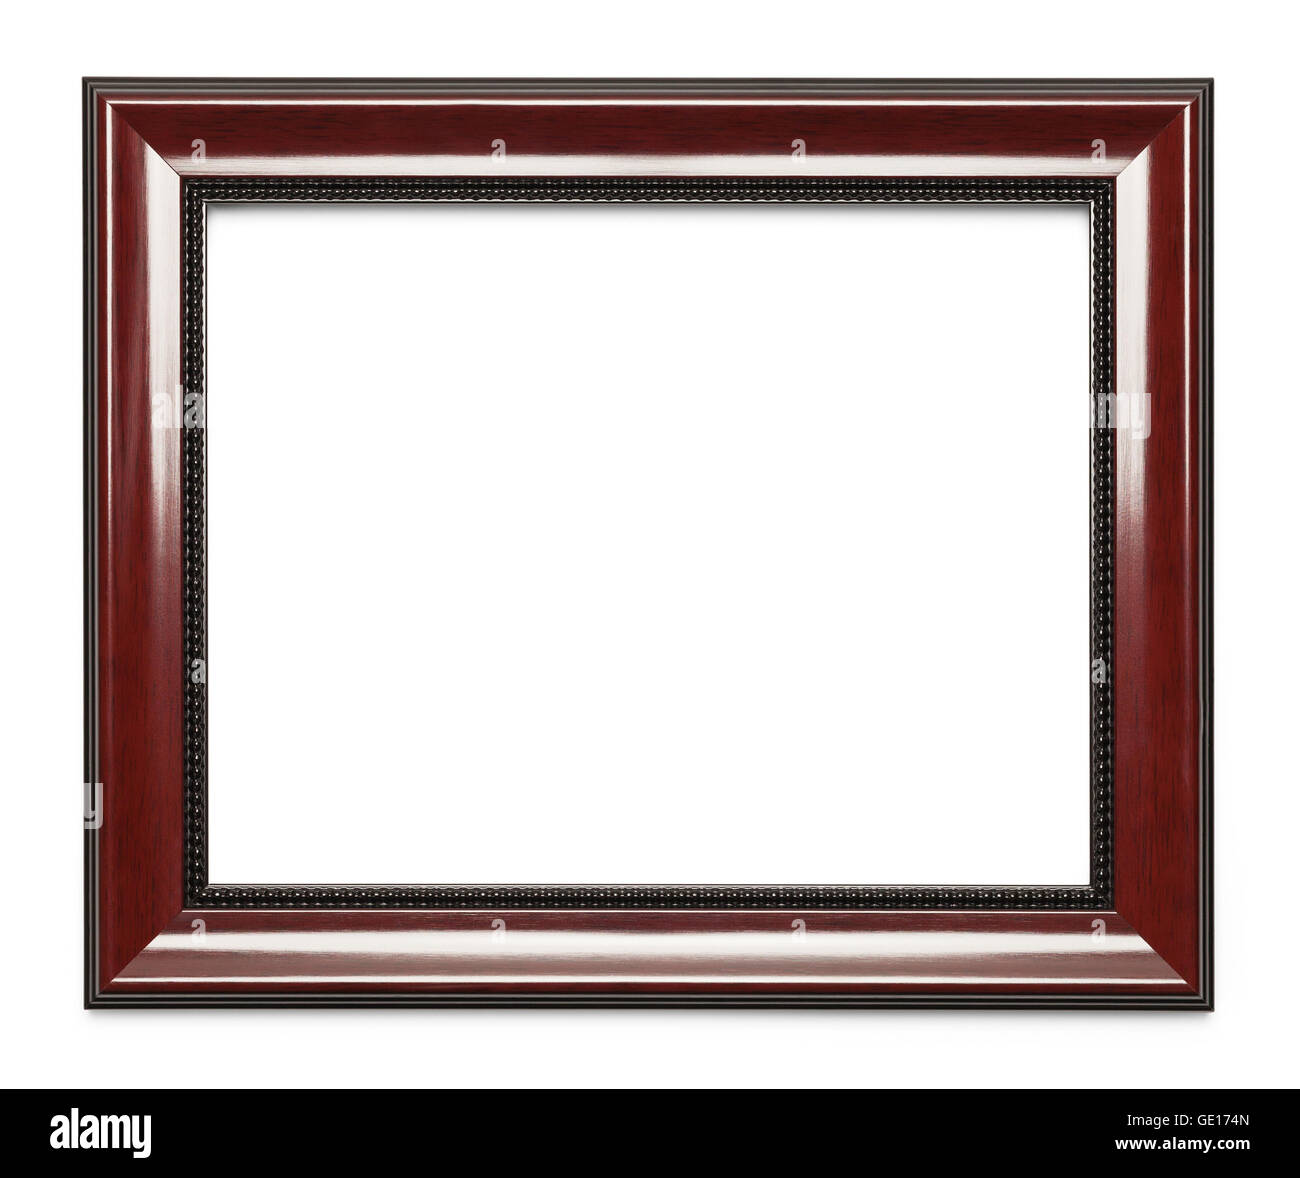 High Polished Professional Wood Frame Isolated on White Background. - Stock Image